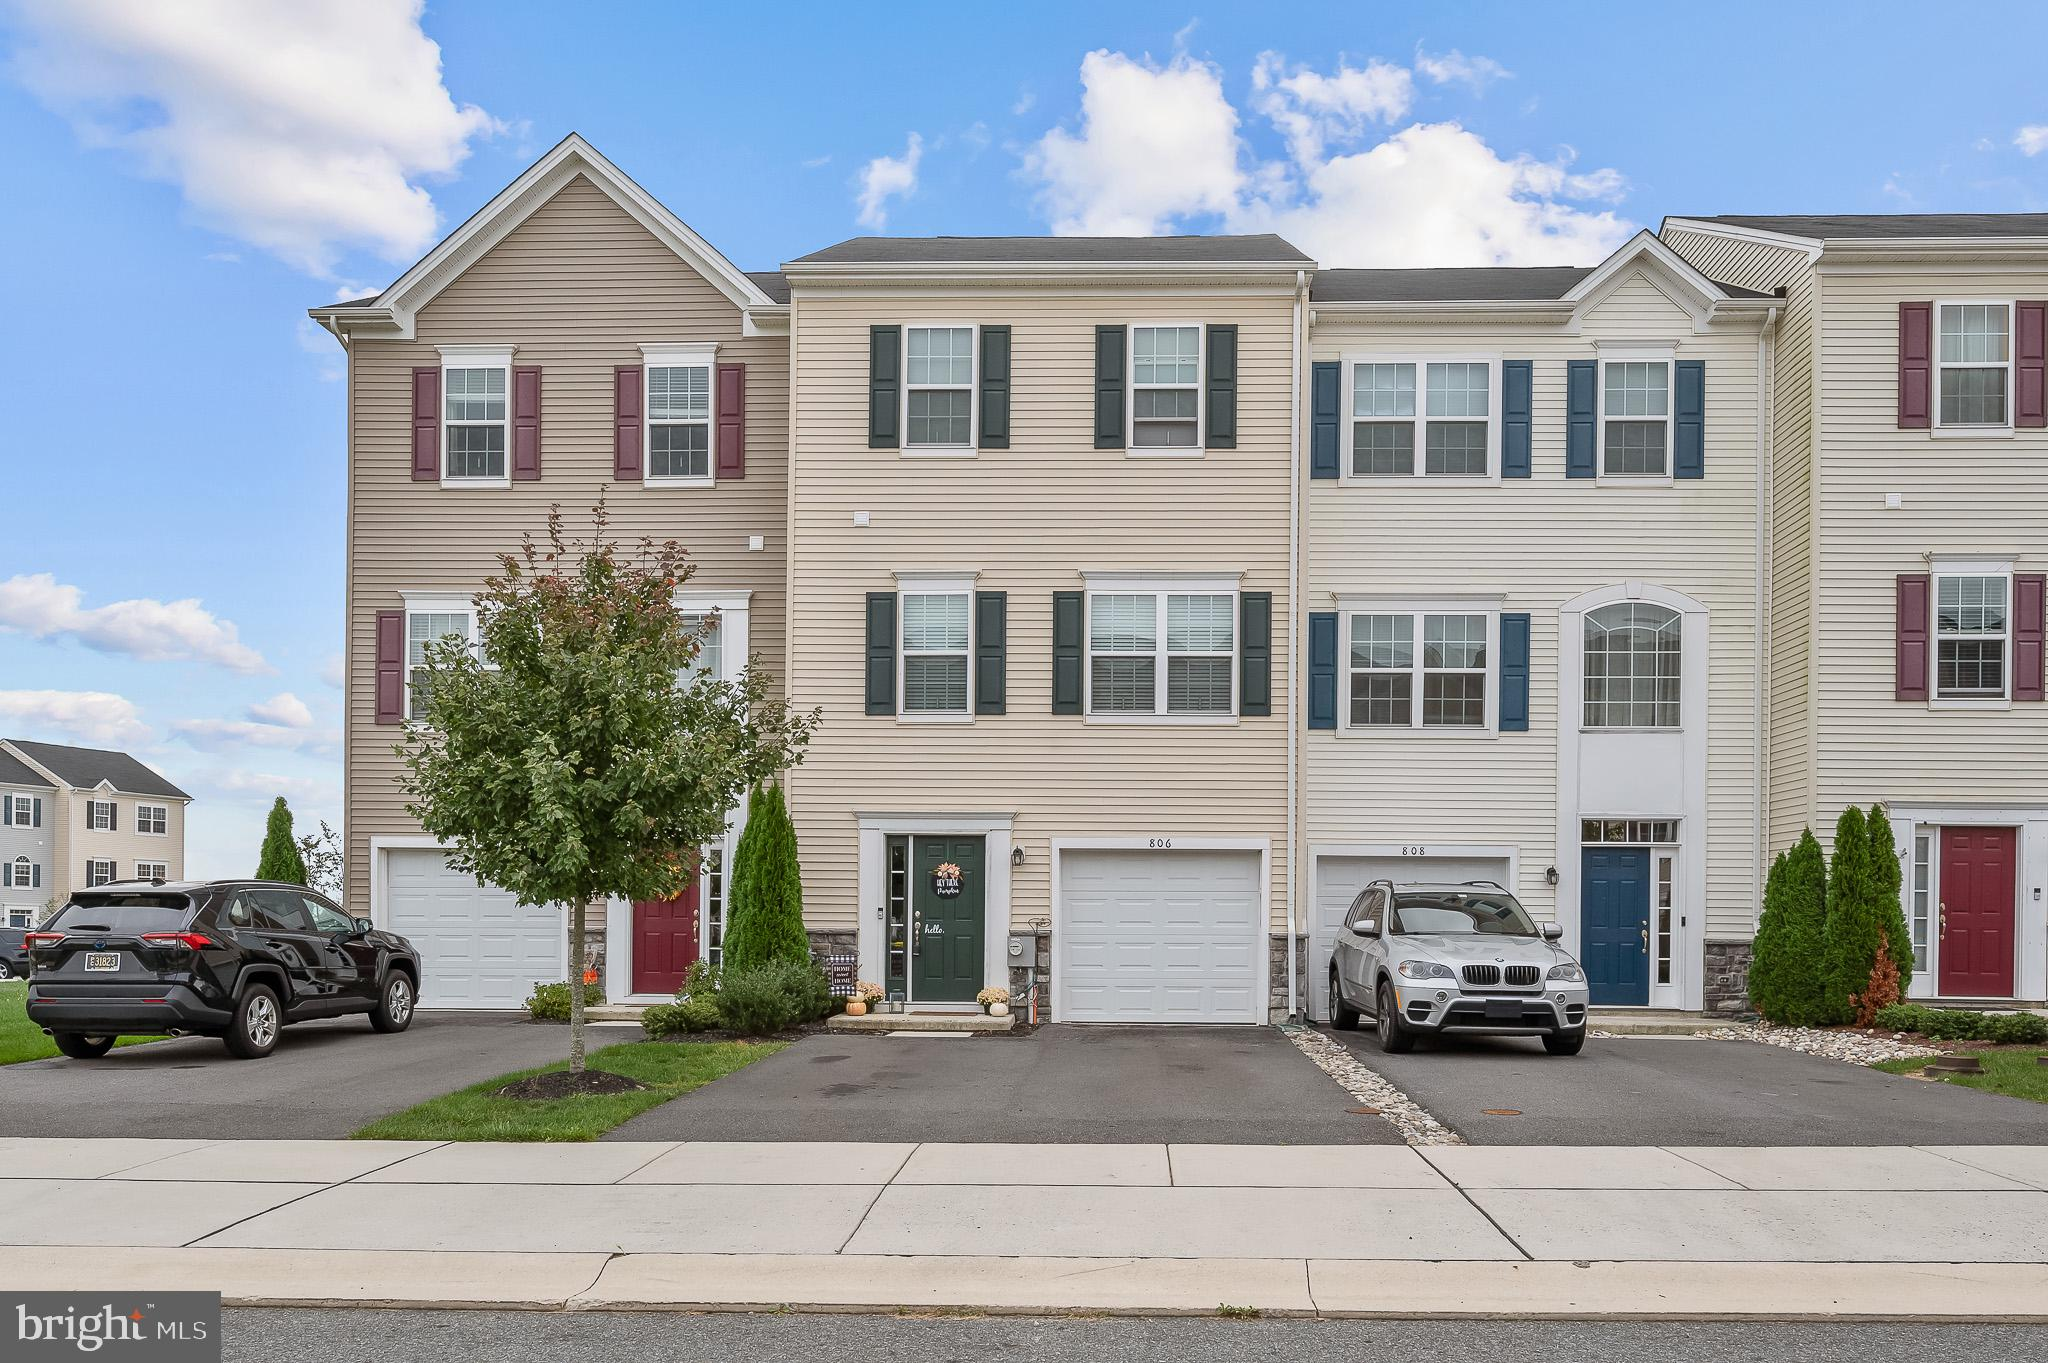 Take a moment to appreciate this well kept, 4 years young town house offering modern upgrades, plenty of space, finished basement, and so much more in desirable Middletown! Call today for your private tour.